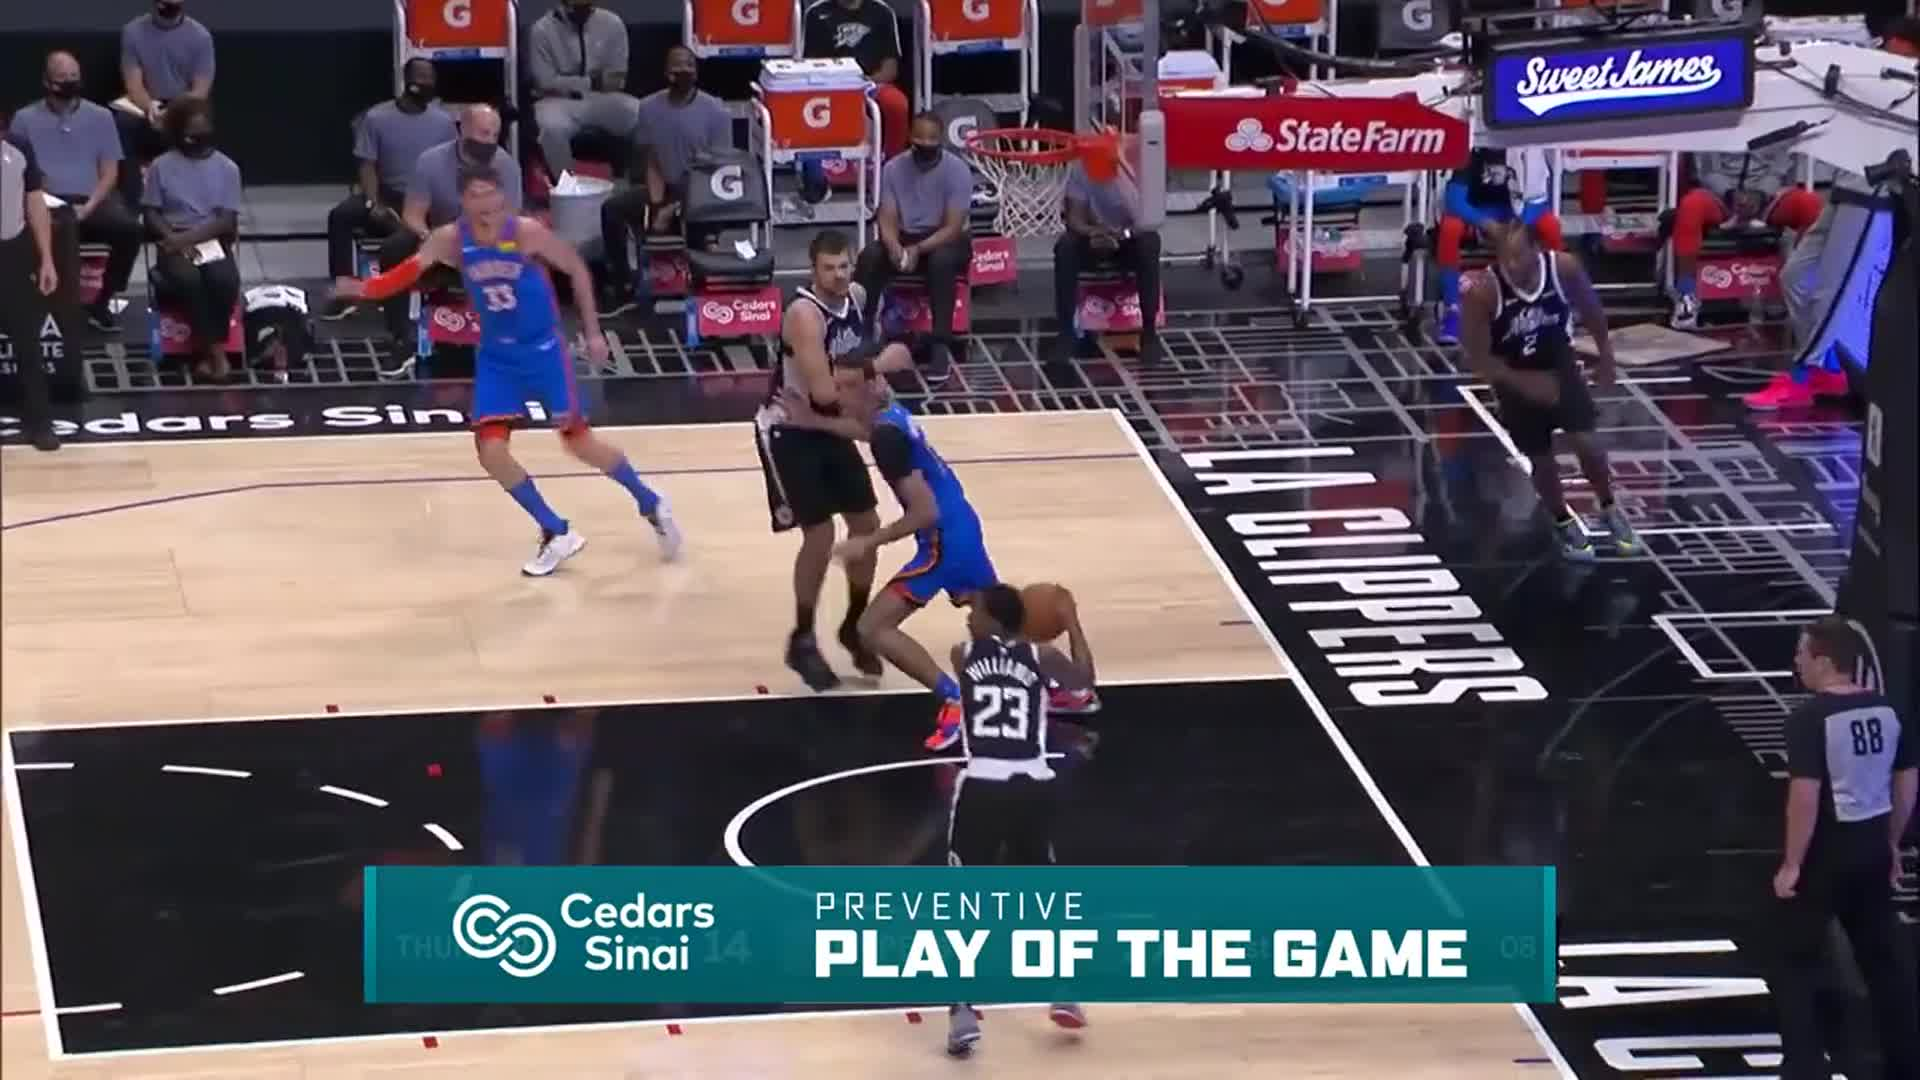 Cedars-Sinai Preventive Play of the Game | Clippers vs Thunder (1.22.21)